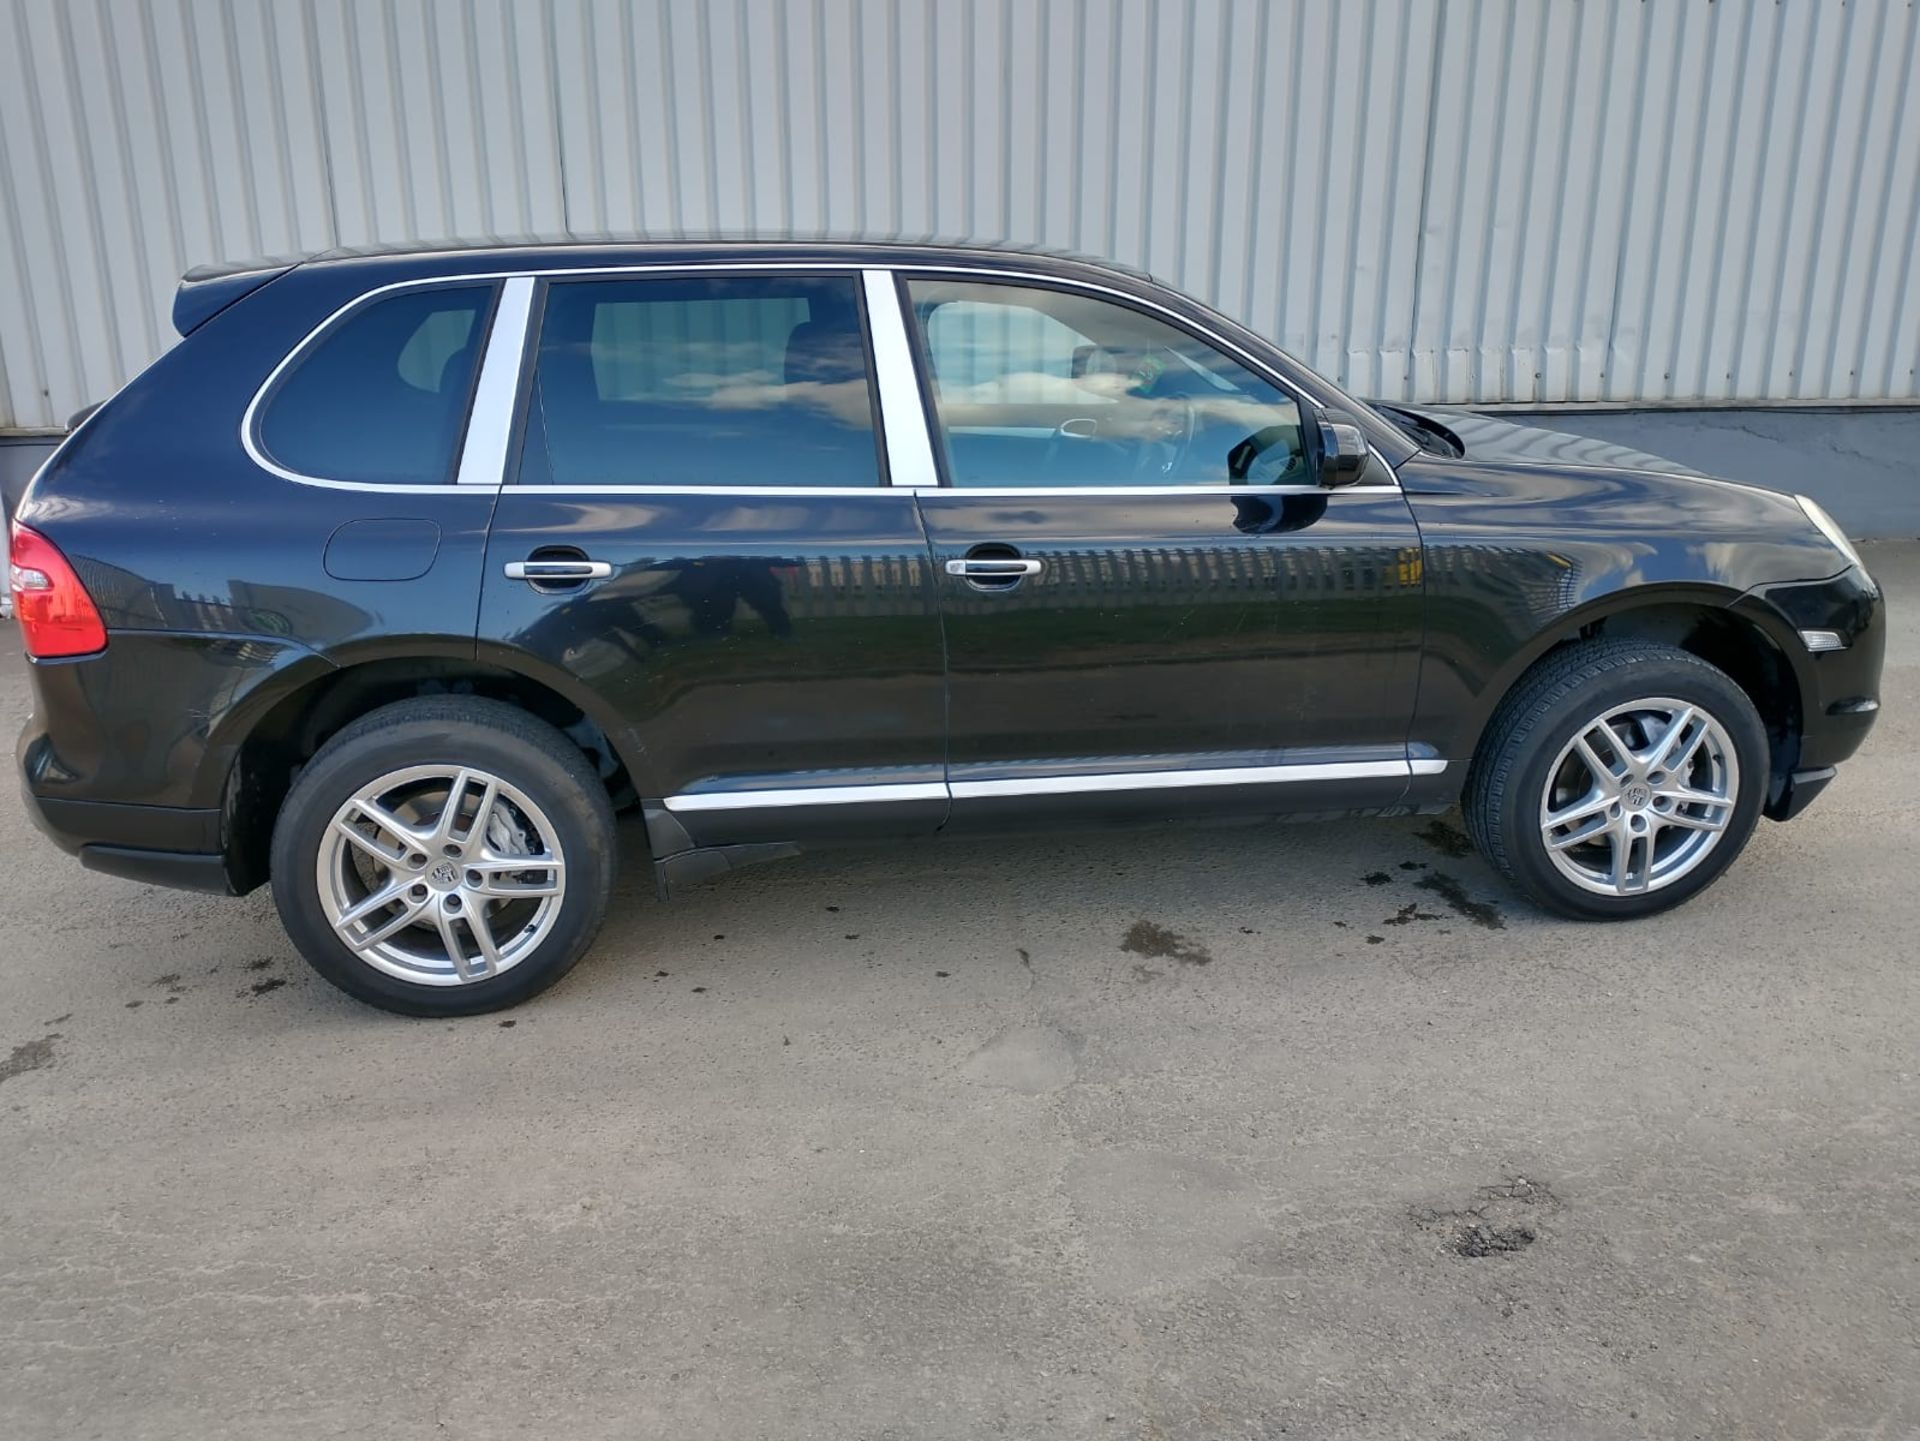 2008 Porsche Cayenne Tiptronic 3.6 5Dr SUV - CL505 - NO VAT ON THE HAMMER - Location: Corby, Northam - Image 15 of 16